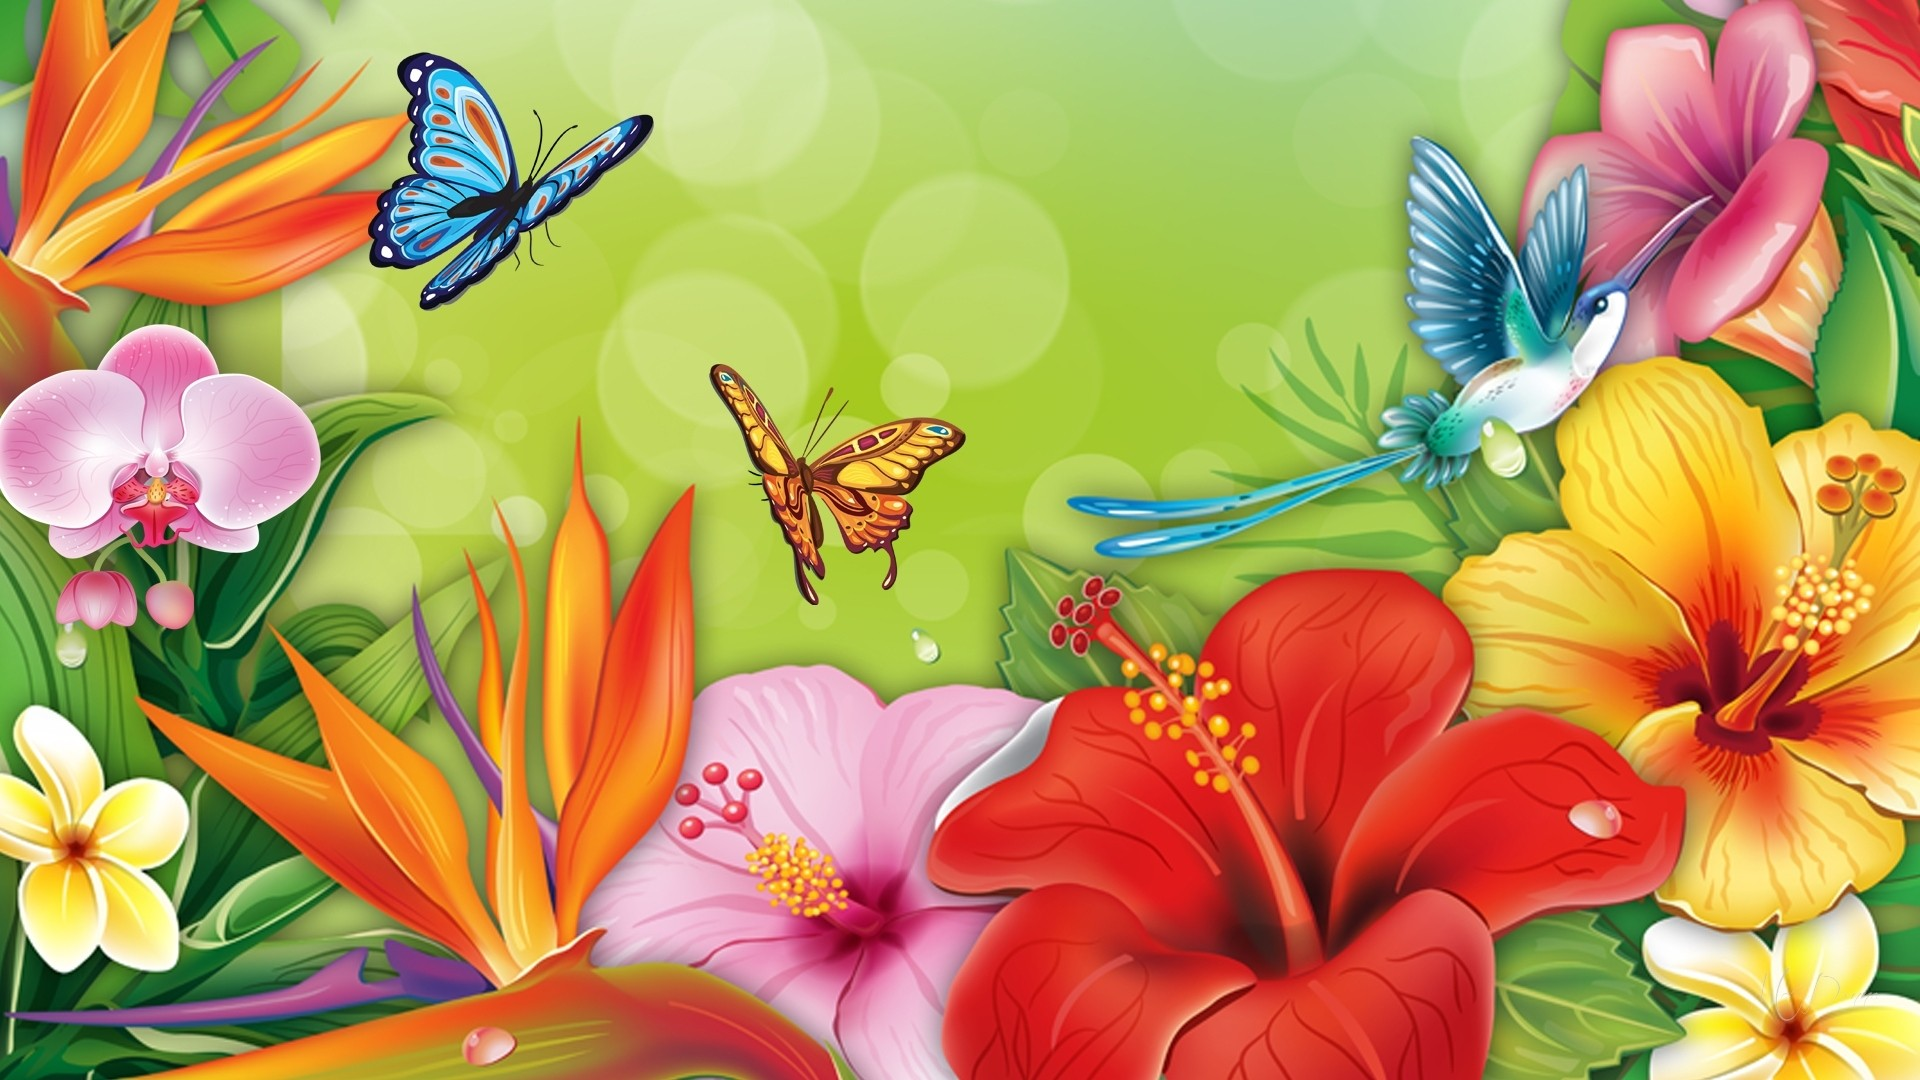 Flowers And Butterflies Hd Wallpaper Background Image